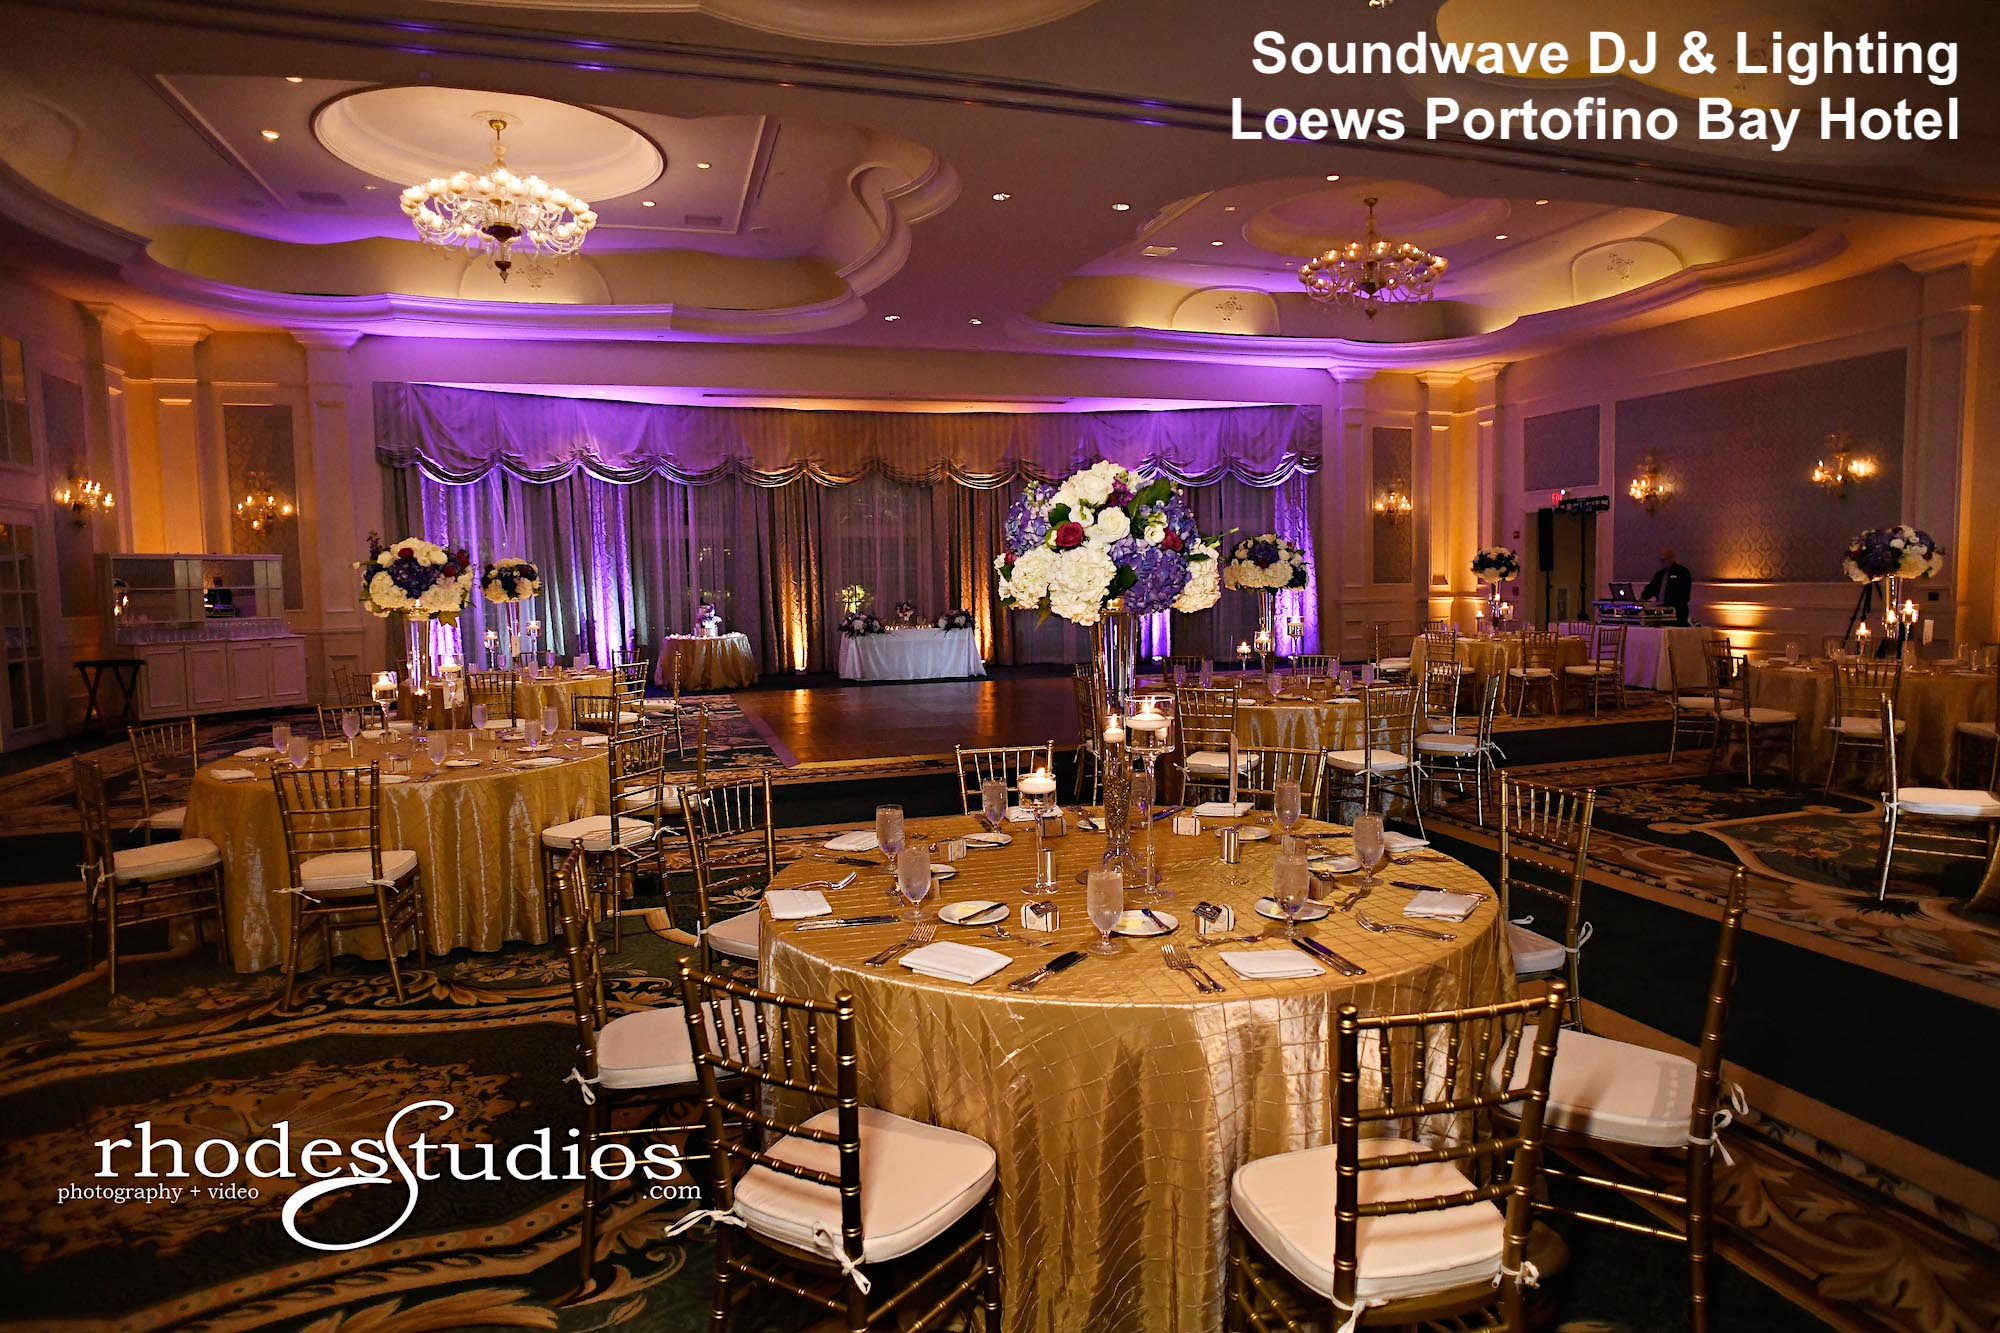 loews portofino bay hotel - orlando wedding venue - orlando wedding dj - soundwave entertainment